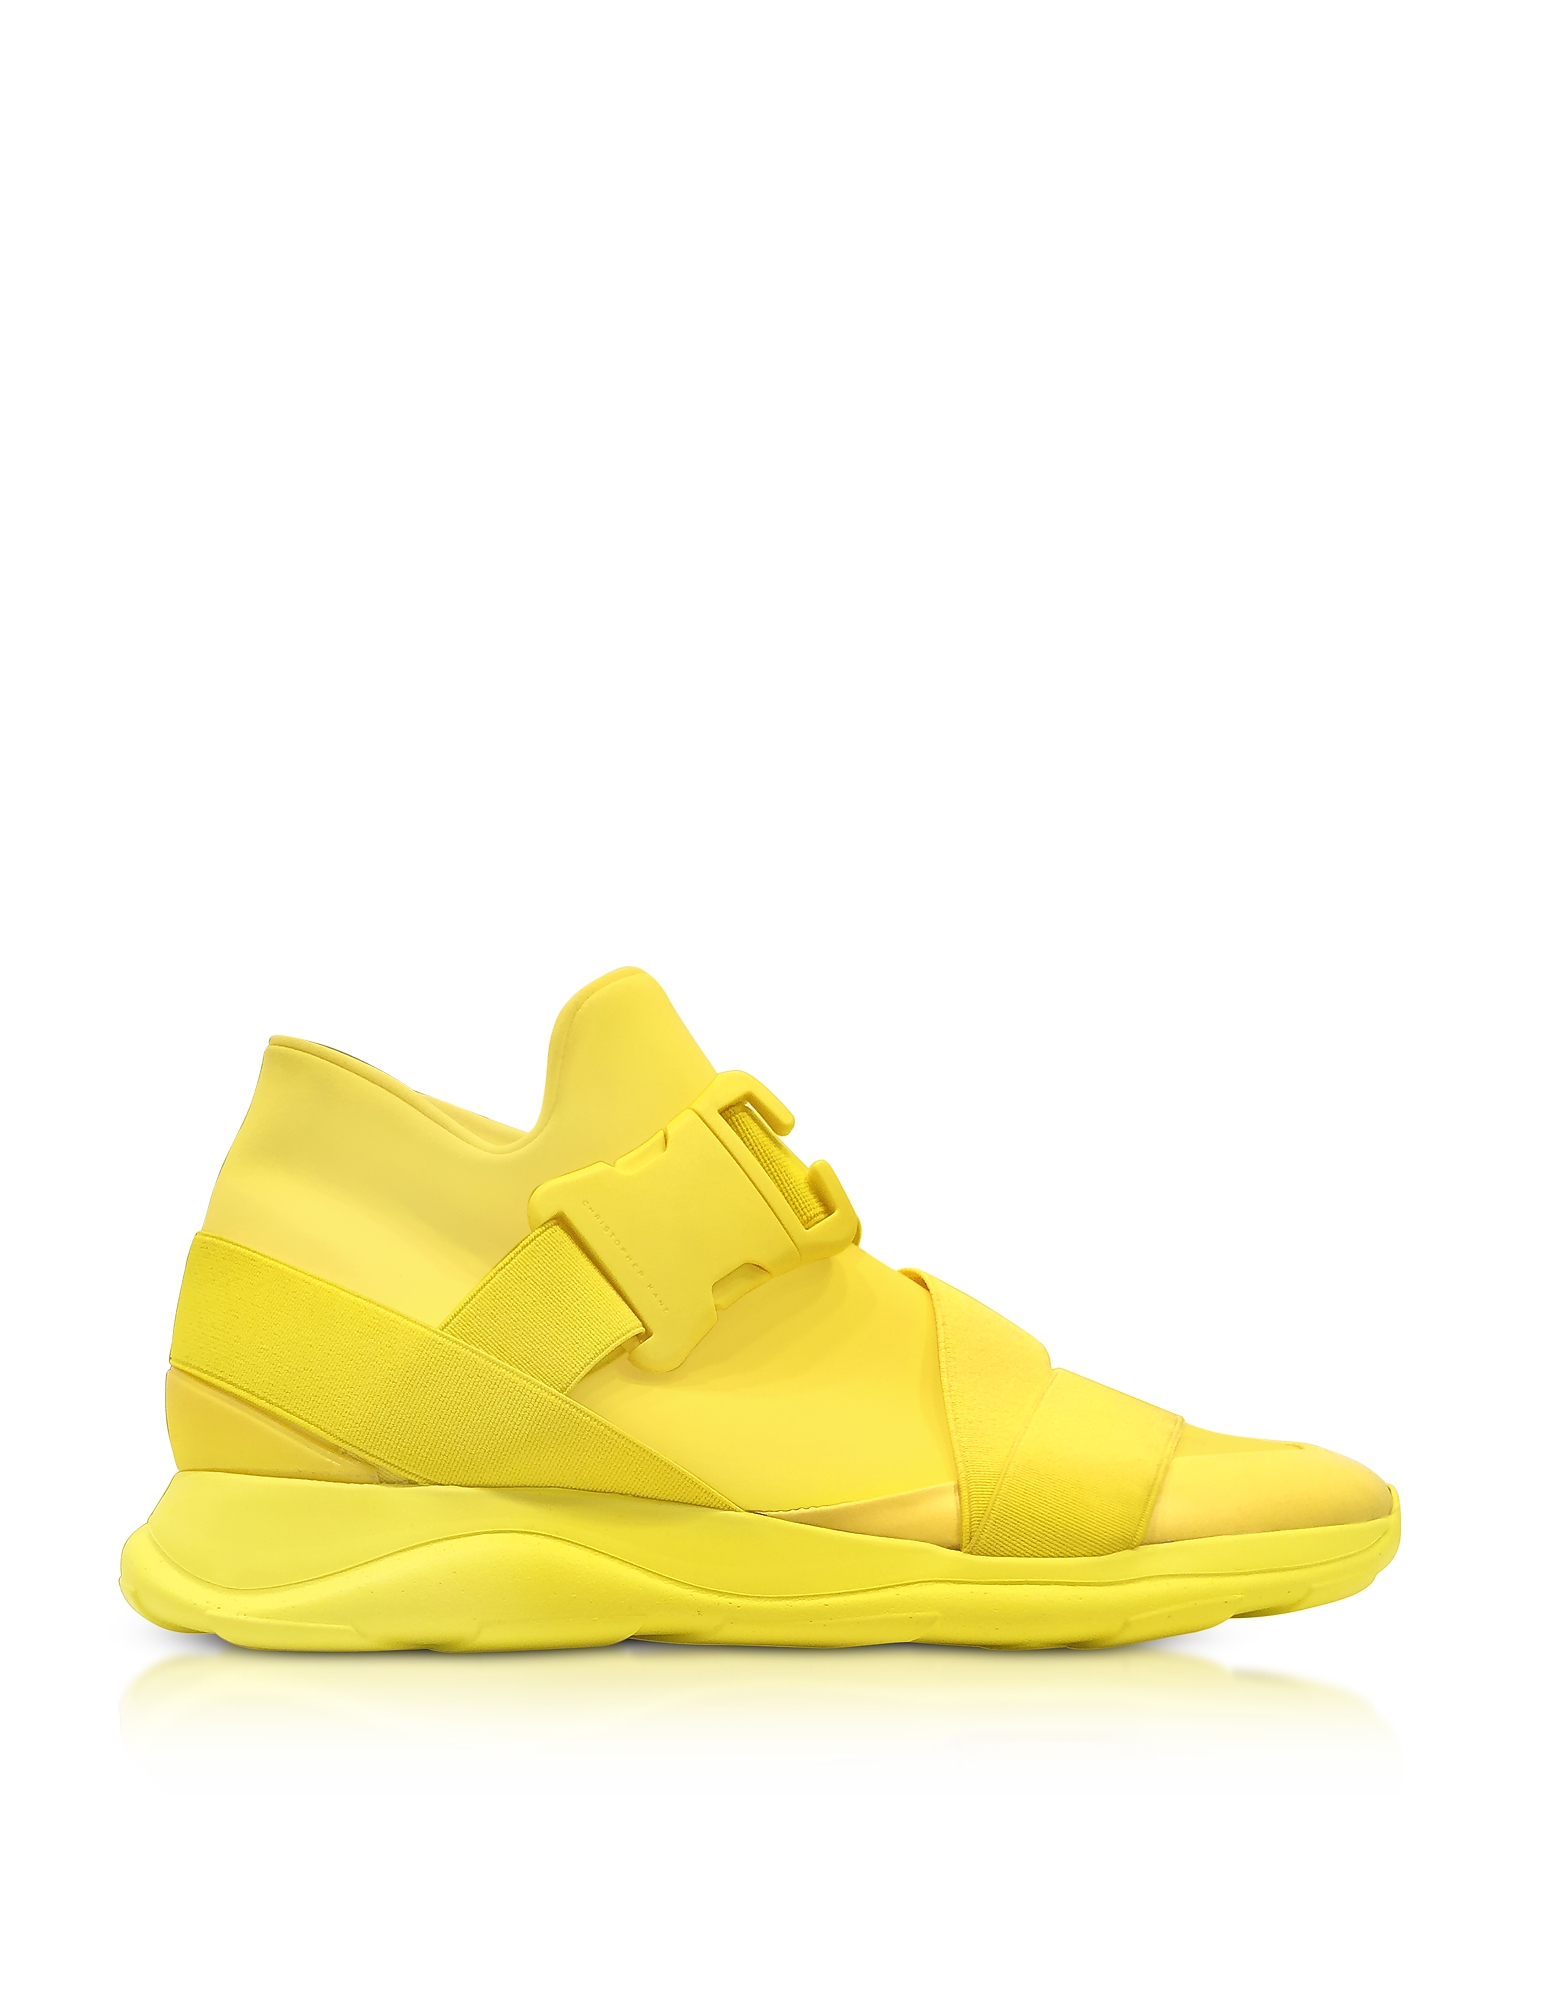 Christopher Kane Shoes, Yellow Neoprene High Top Women's Sneakers